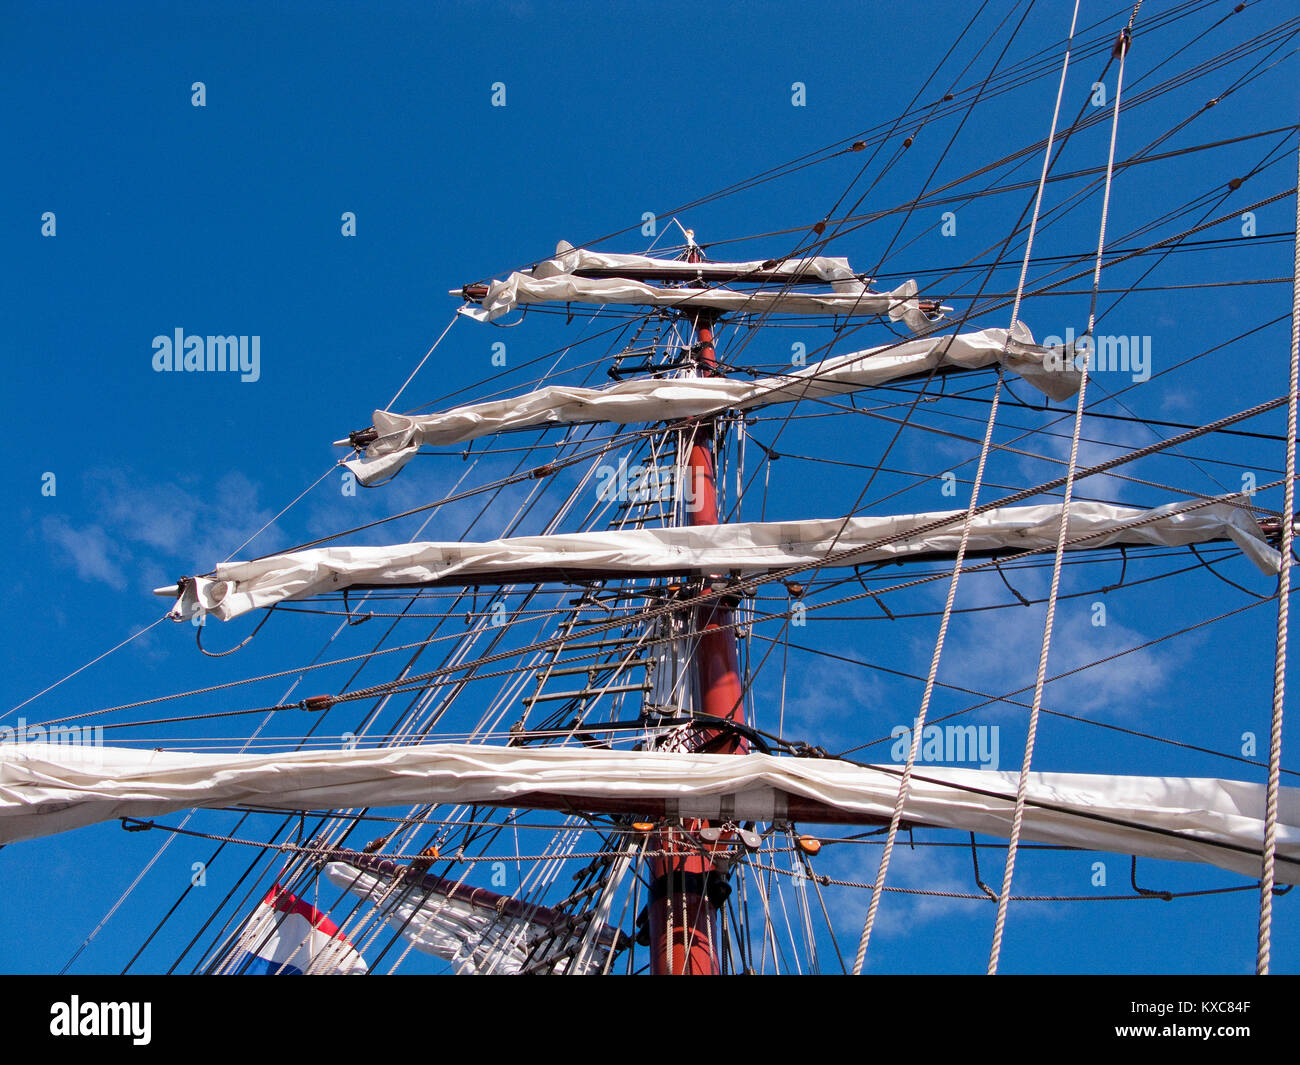 Mast and sails of the square-rigged ship 'Aphrodite', Zingst, Zingster Strom, Fishland, Mecklenburg-Western - Stock Image